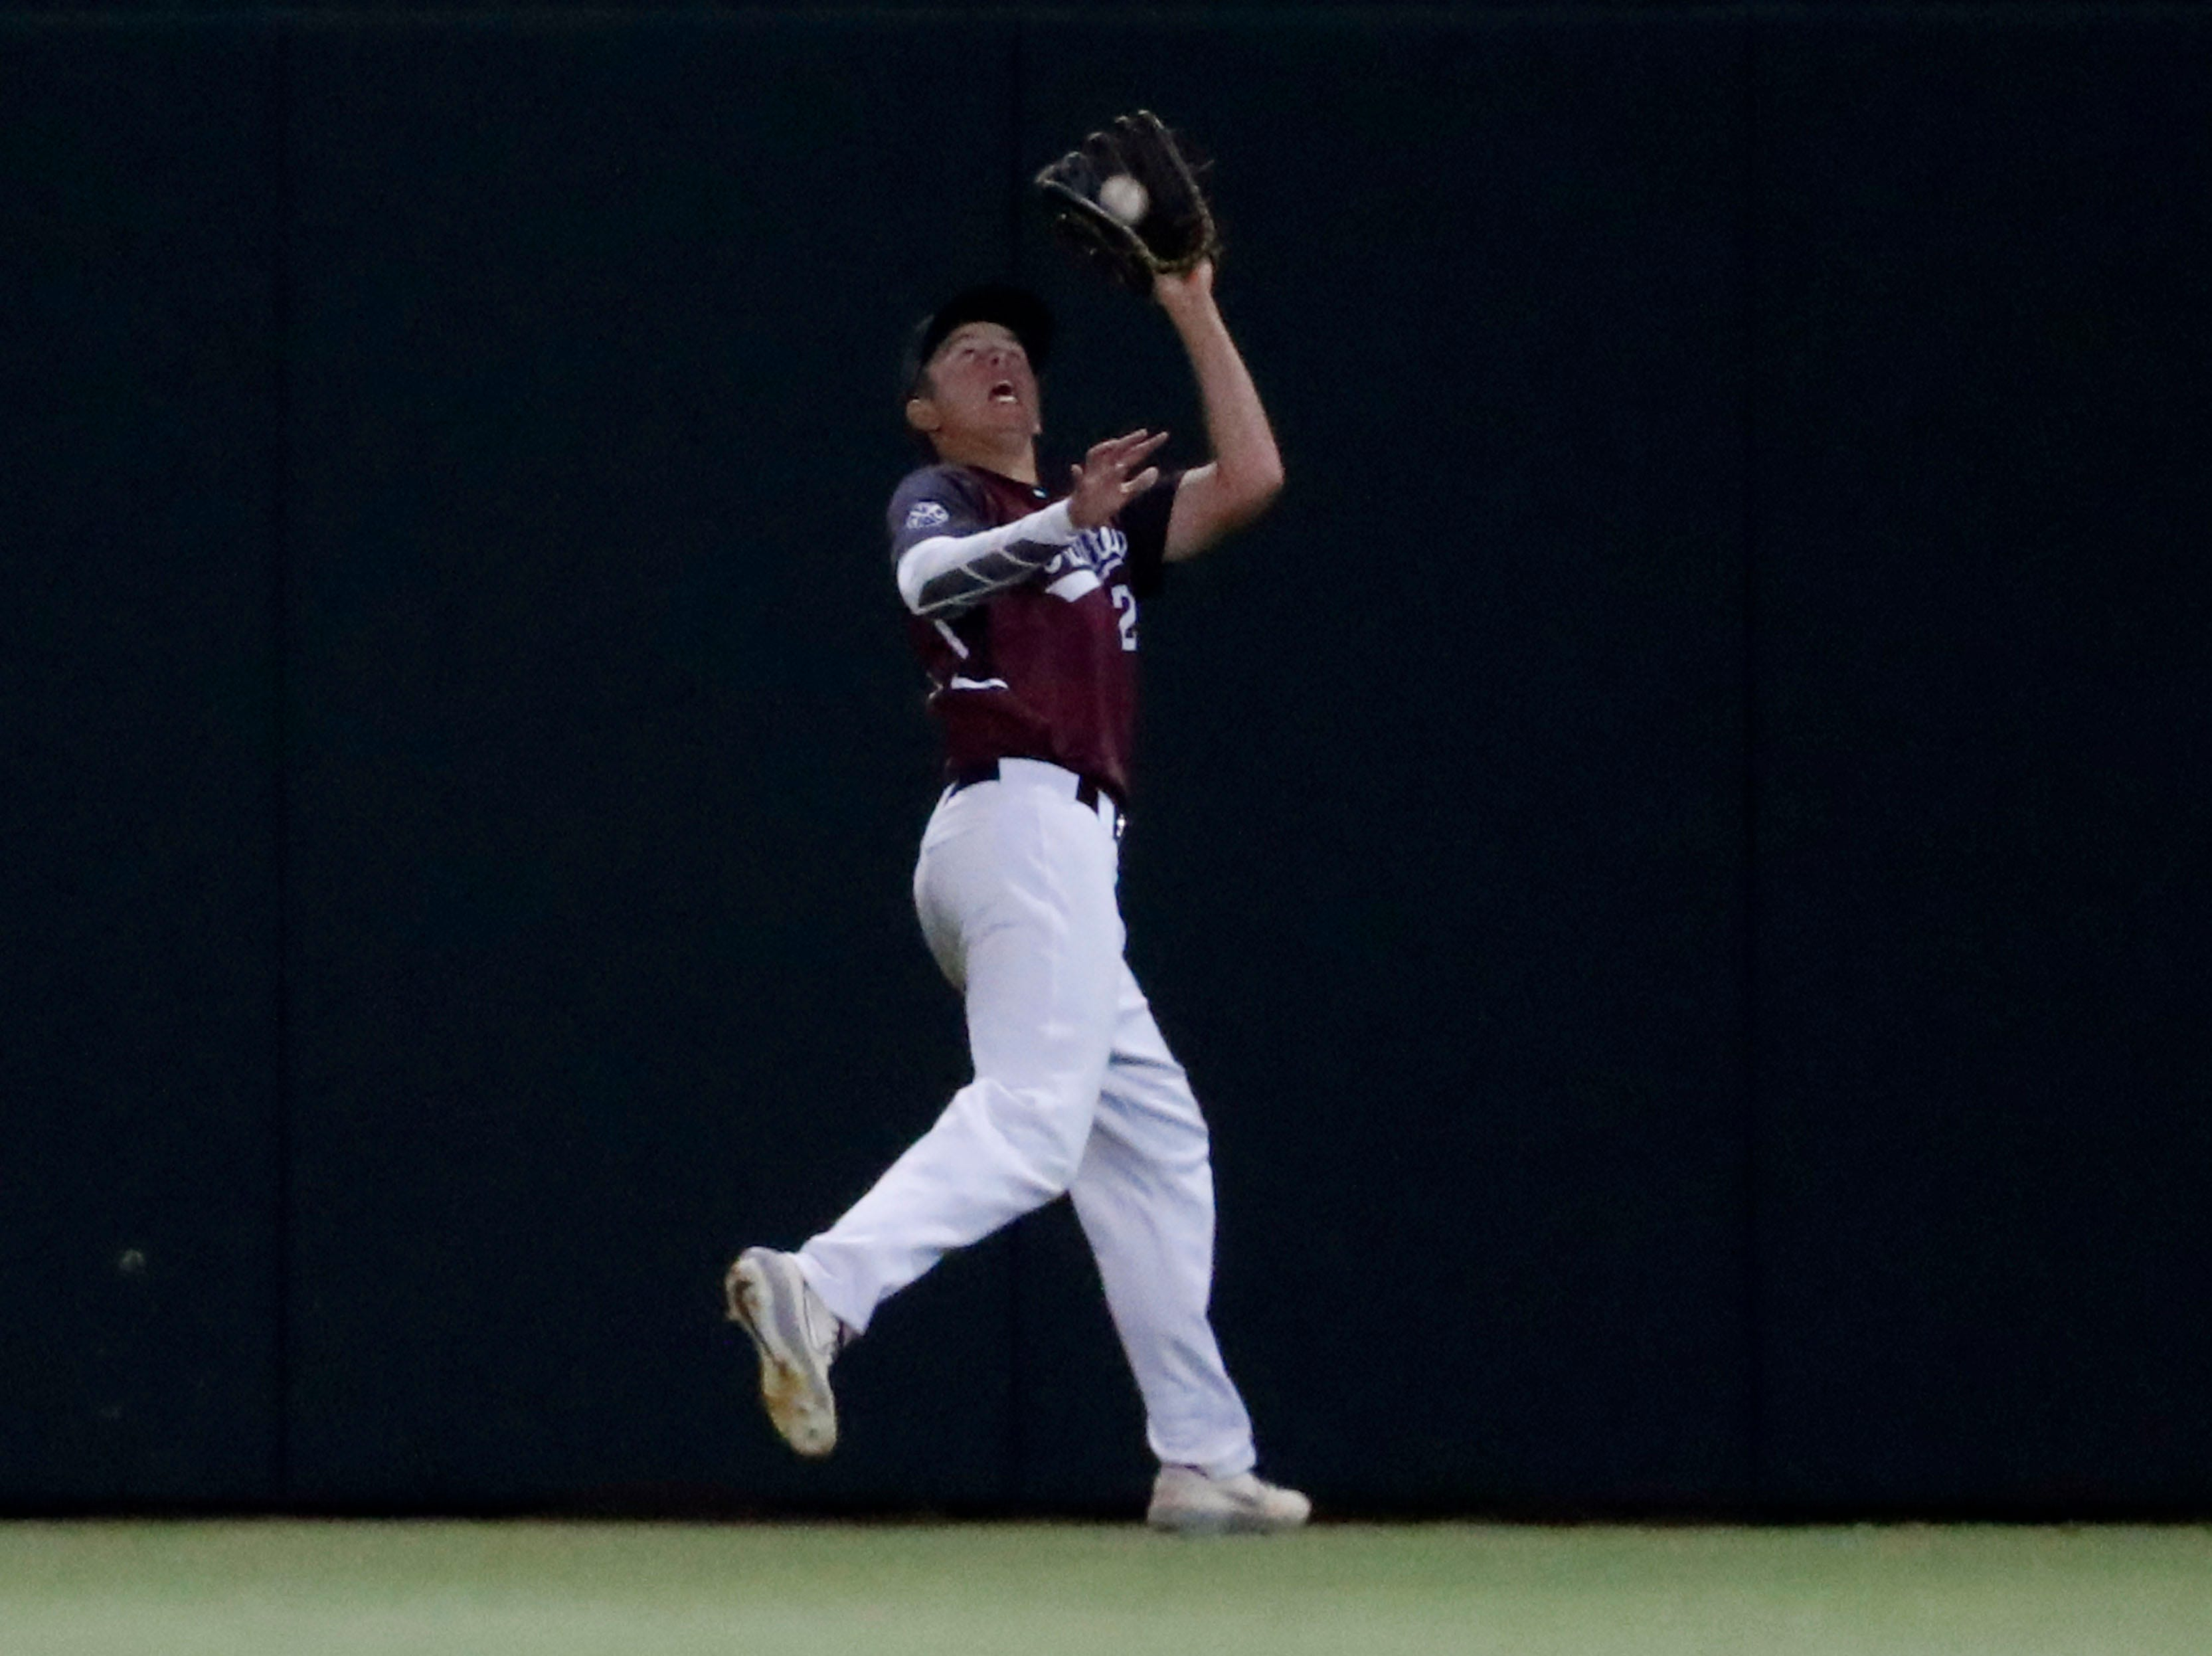 Hamilton center fielder Michael Brueser (22) catches a fly ball against Corona del Sol during the 6A State Baseball Championship in Tempe, Ariz. May 15, 2019.